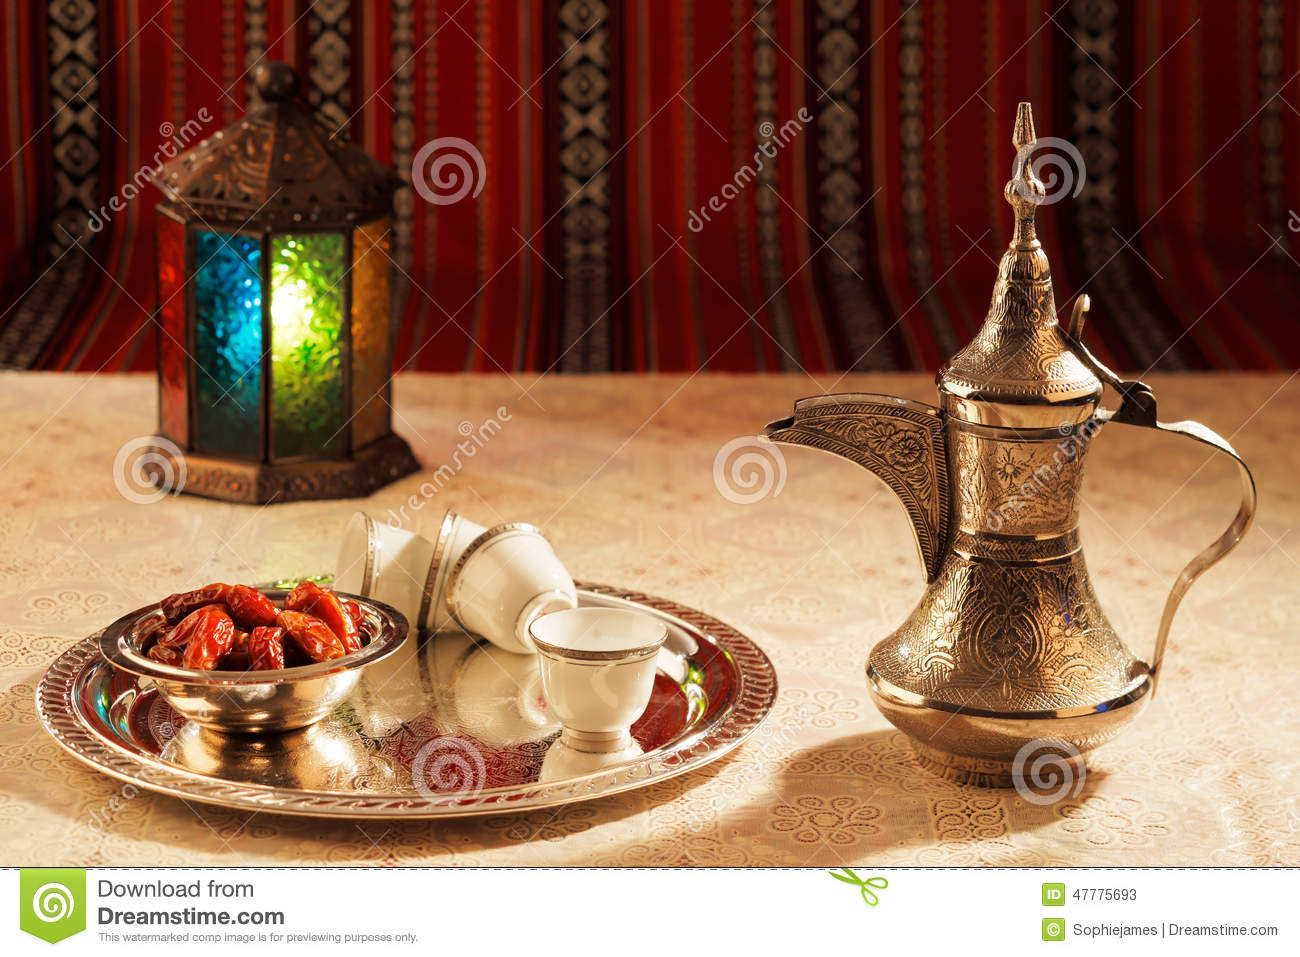 Arabica Tea Coffee Zeist Iconic Abrian Fabric Tea And Dates Symbolise Arabian